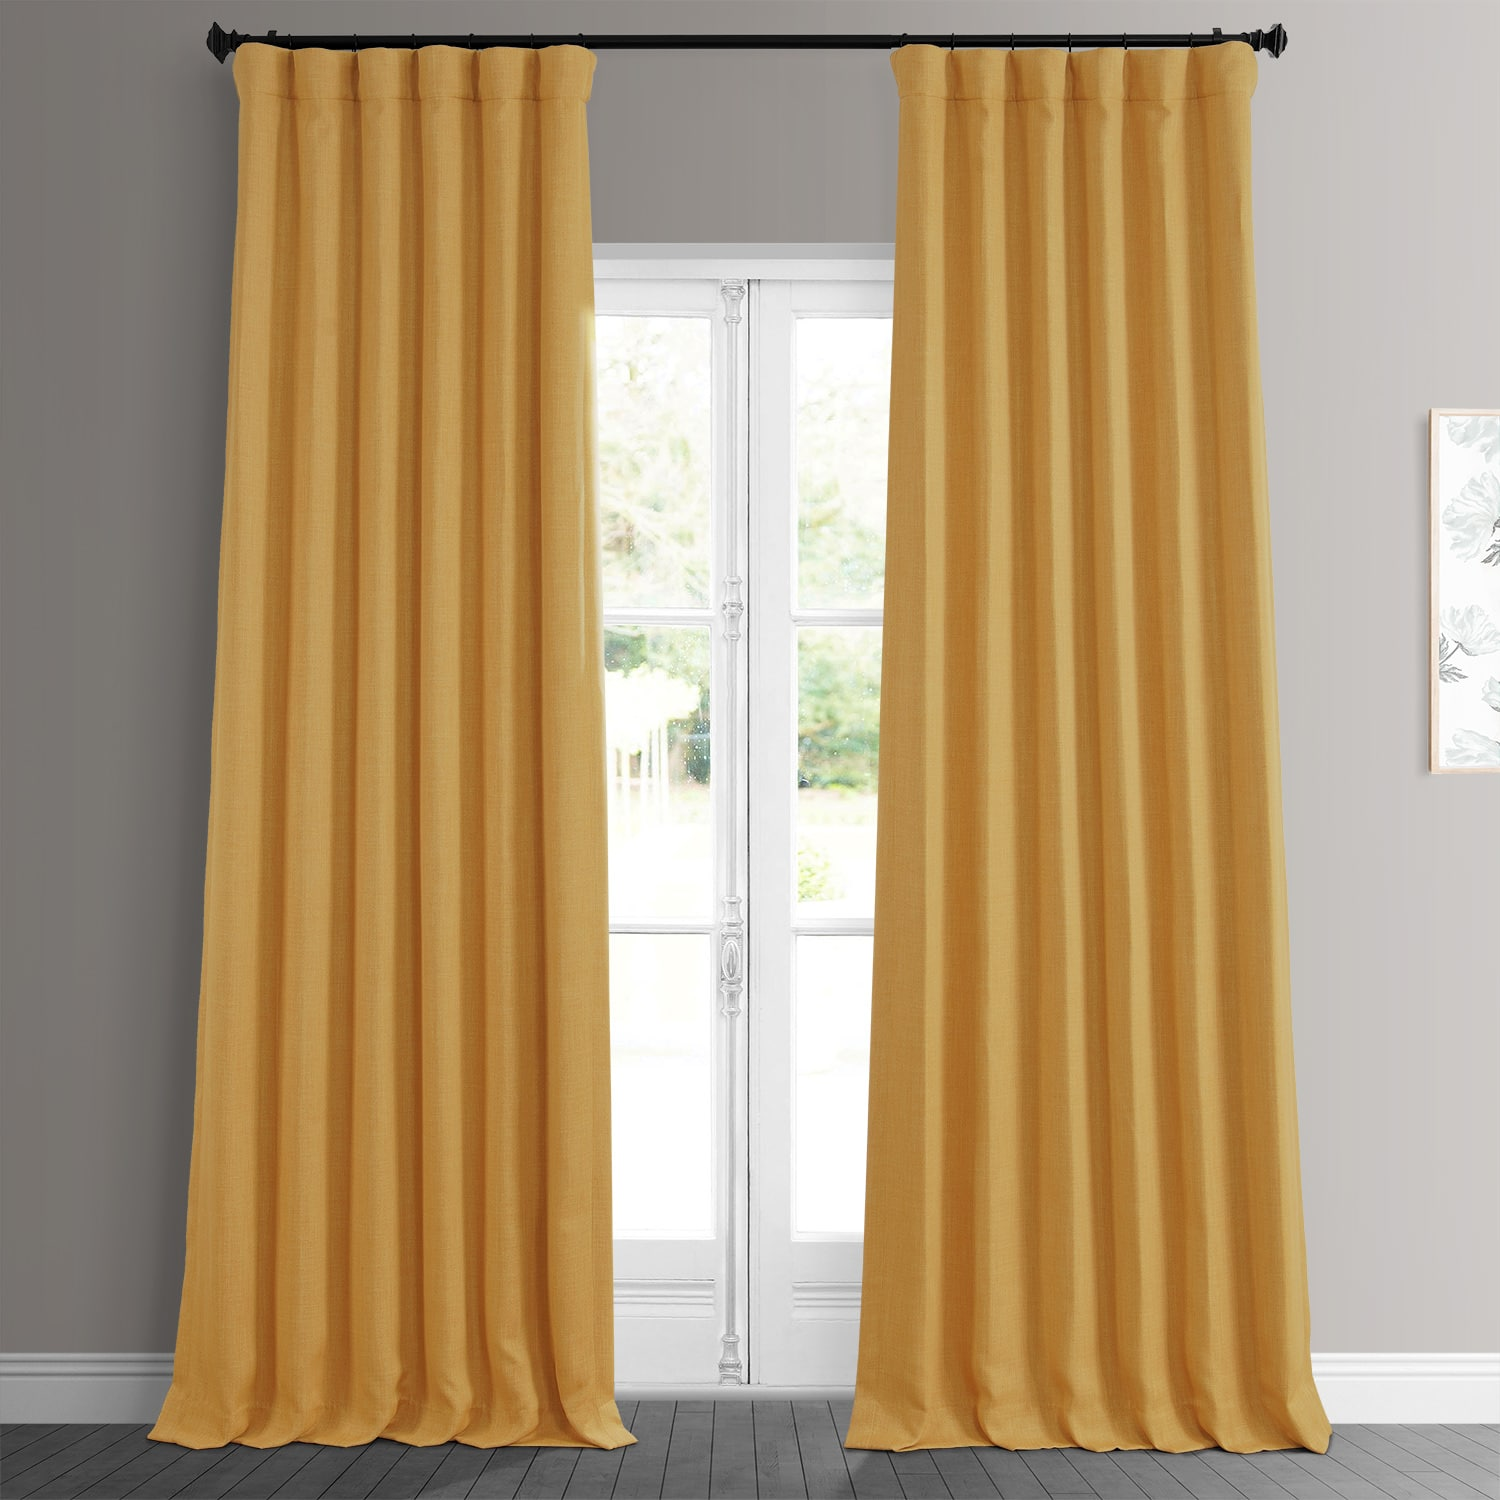 Dandelion Gold Faux Linen Room Darkening Curtain